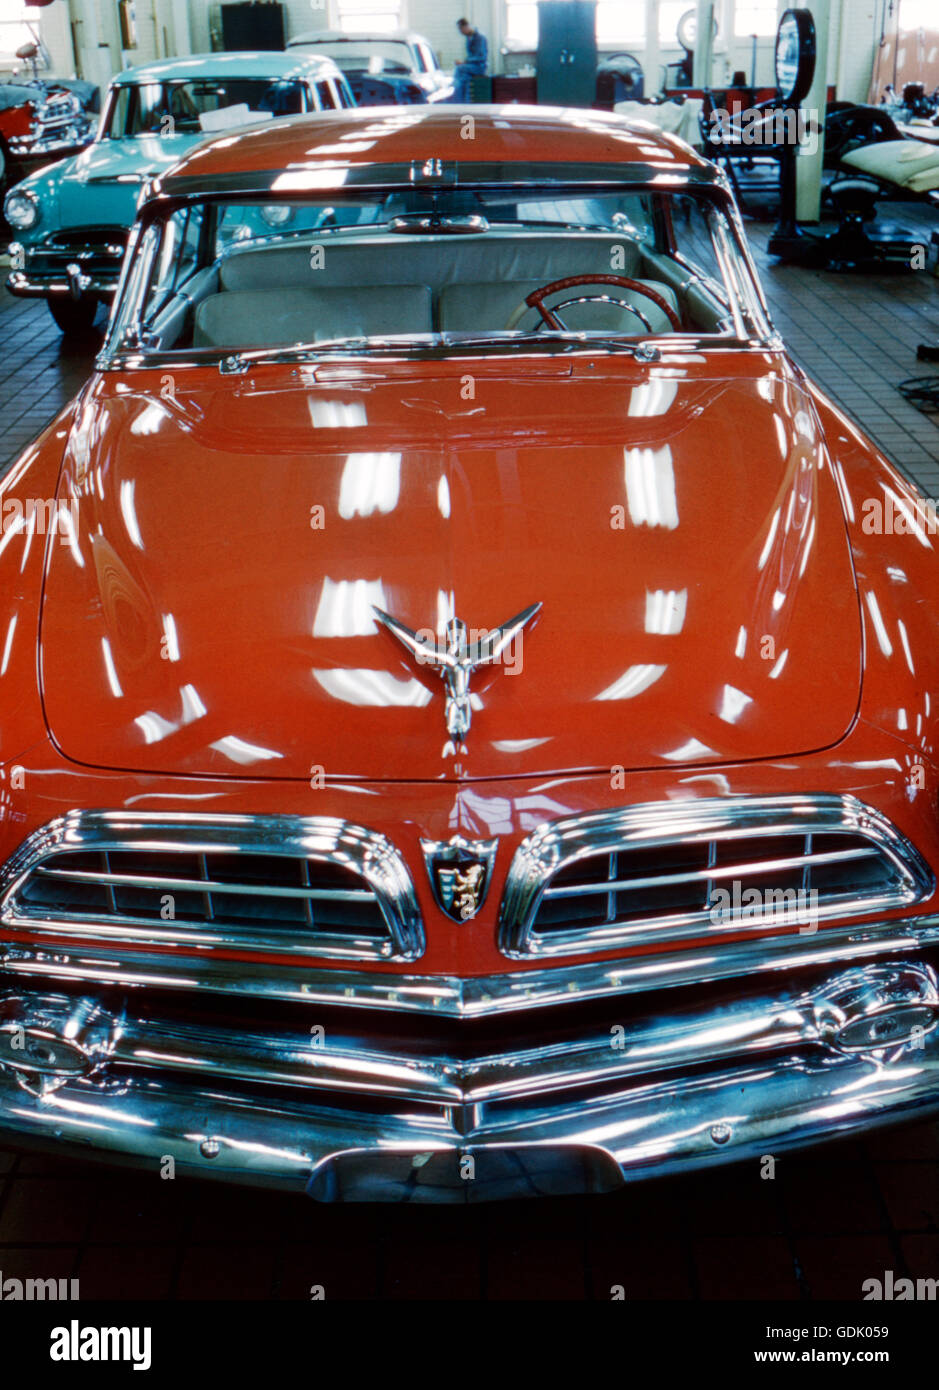 The 1955 Chrysler Plymouth, designed by Virgil Exner - Stock Image